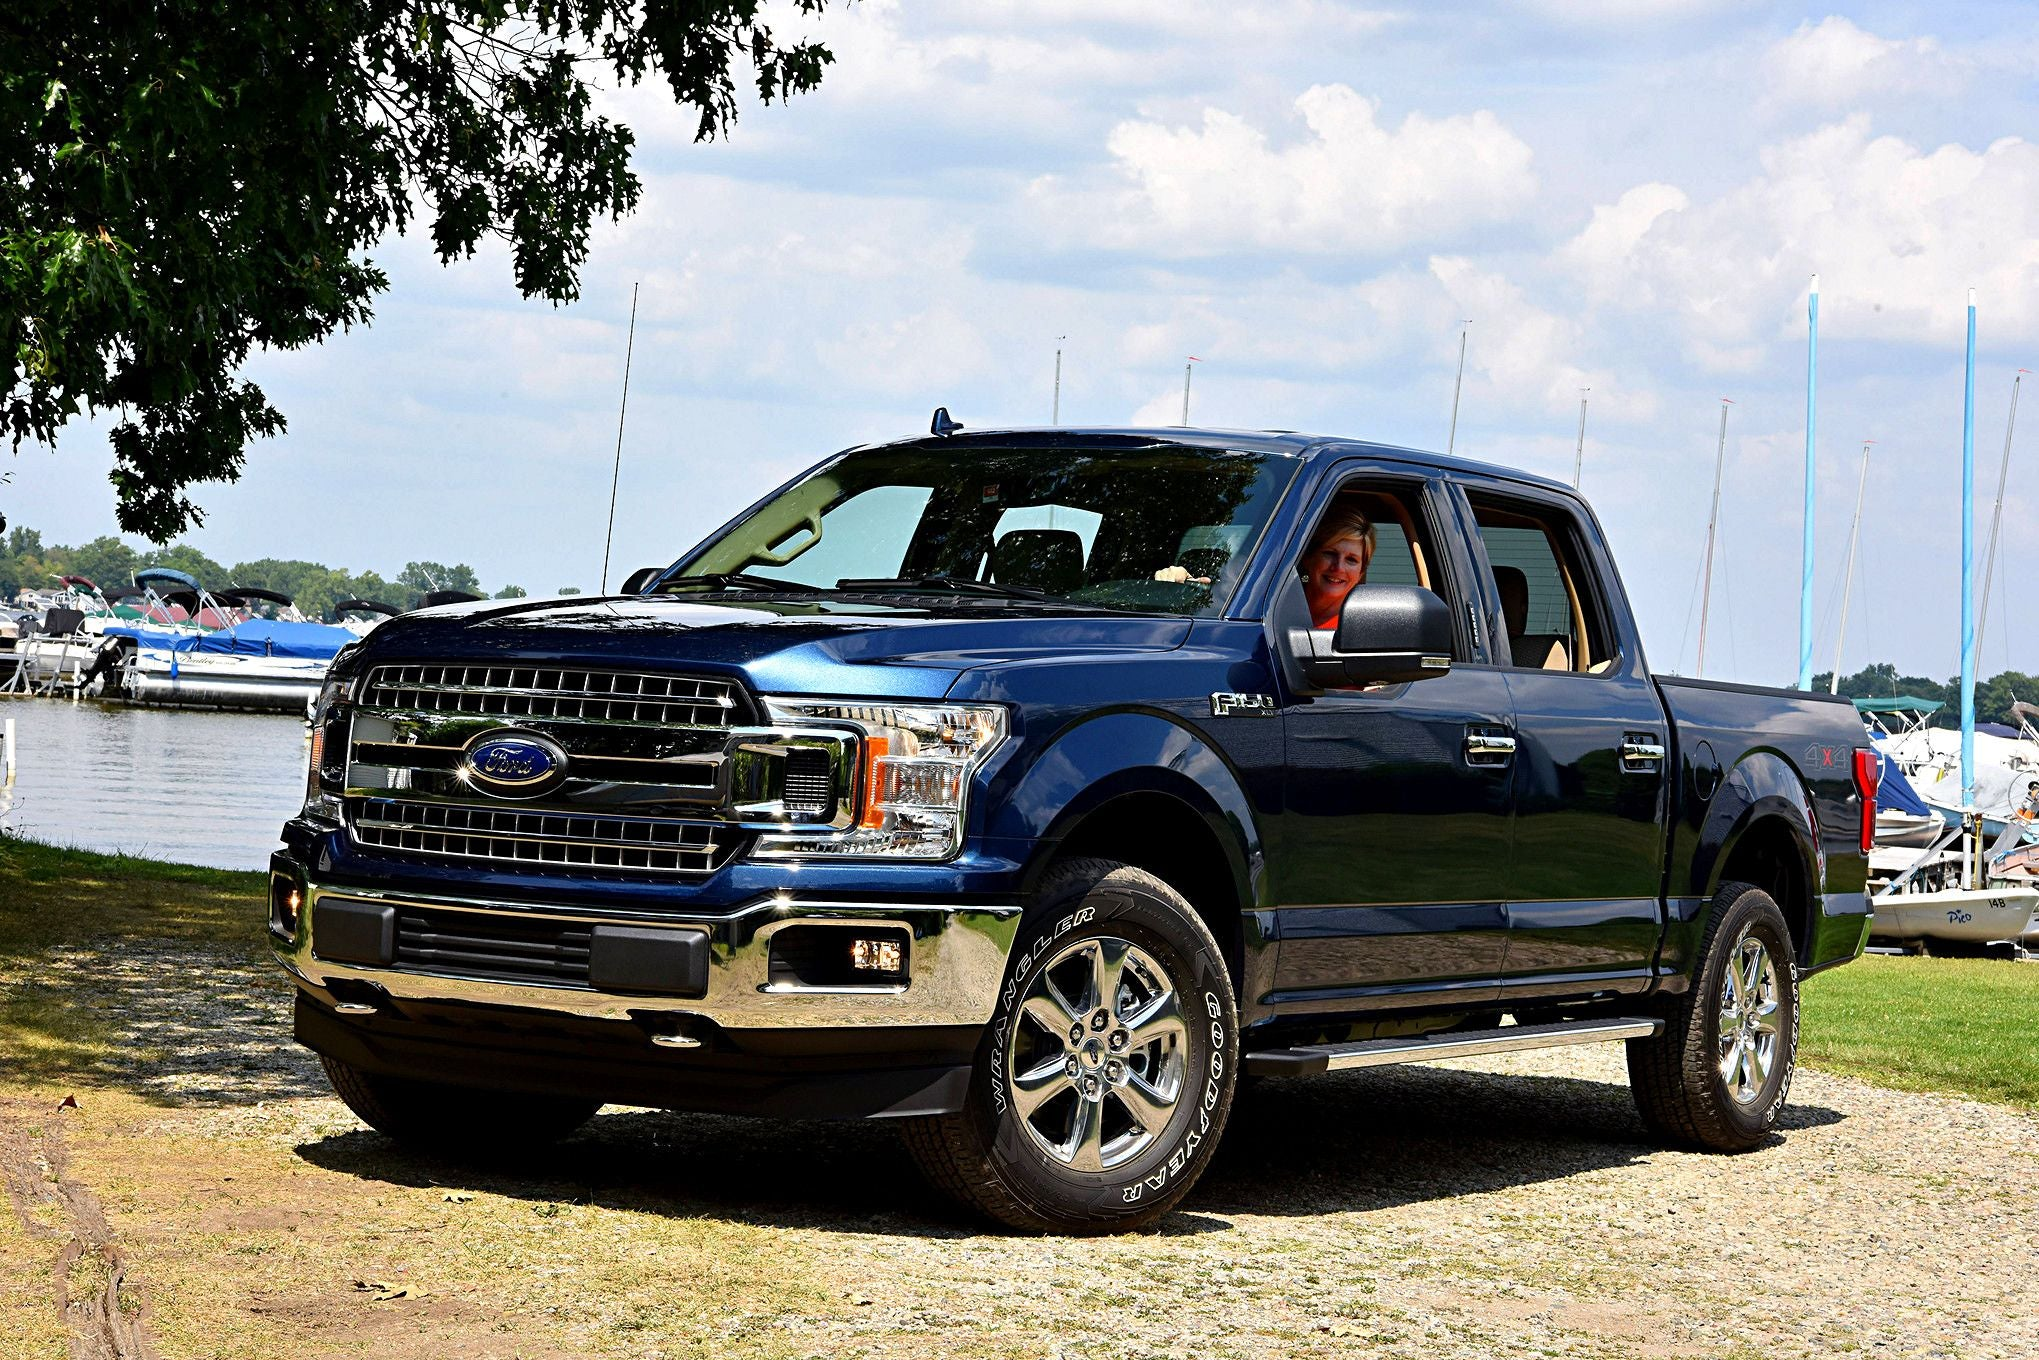 ford s over safety f april a problem automaker truck recall recalls rollaway friday issued the dangerous pickup trucks recalled